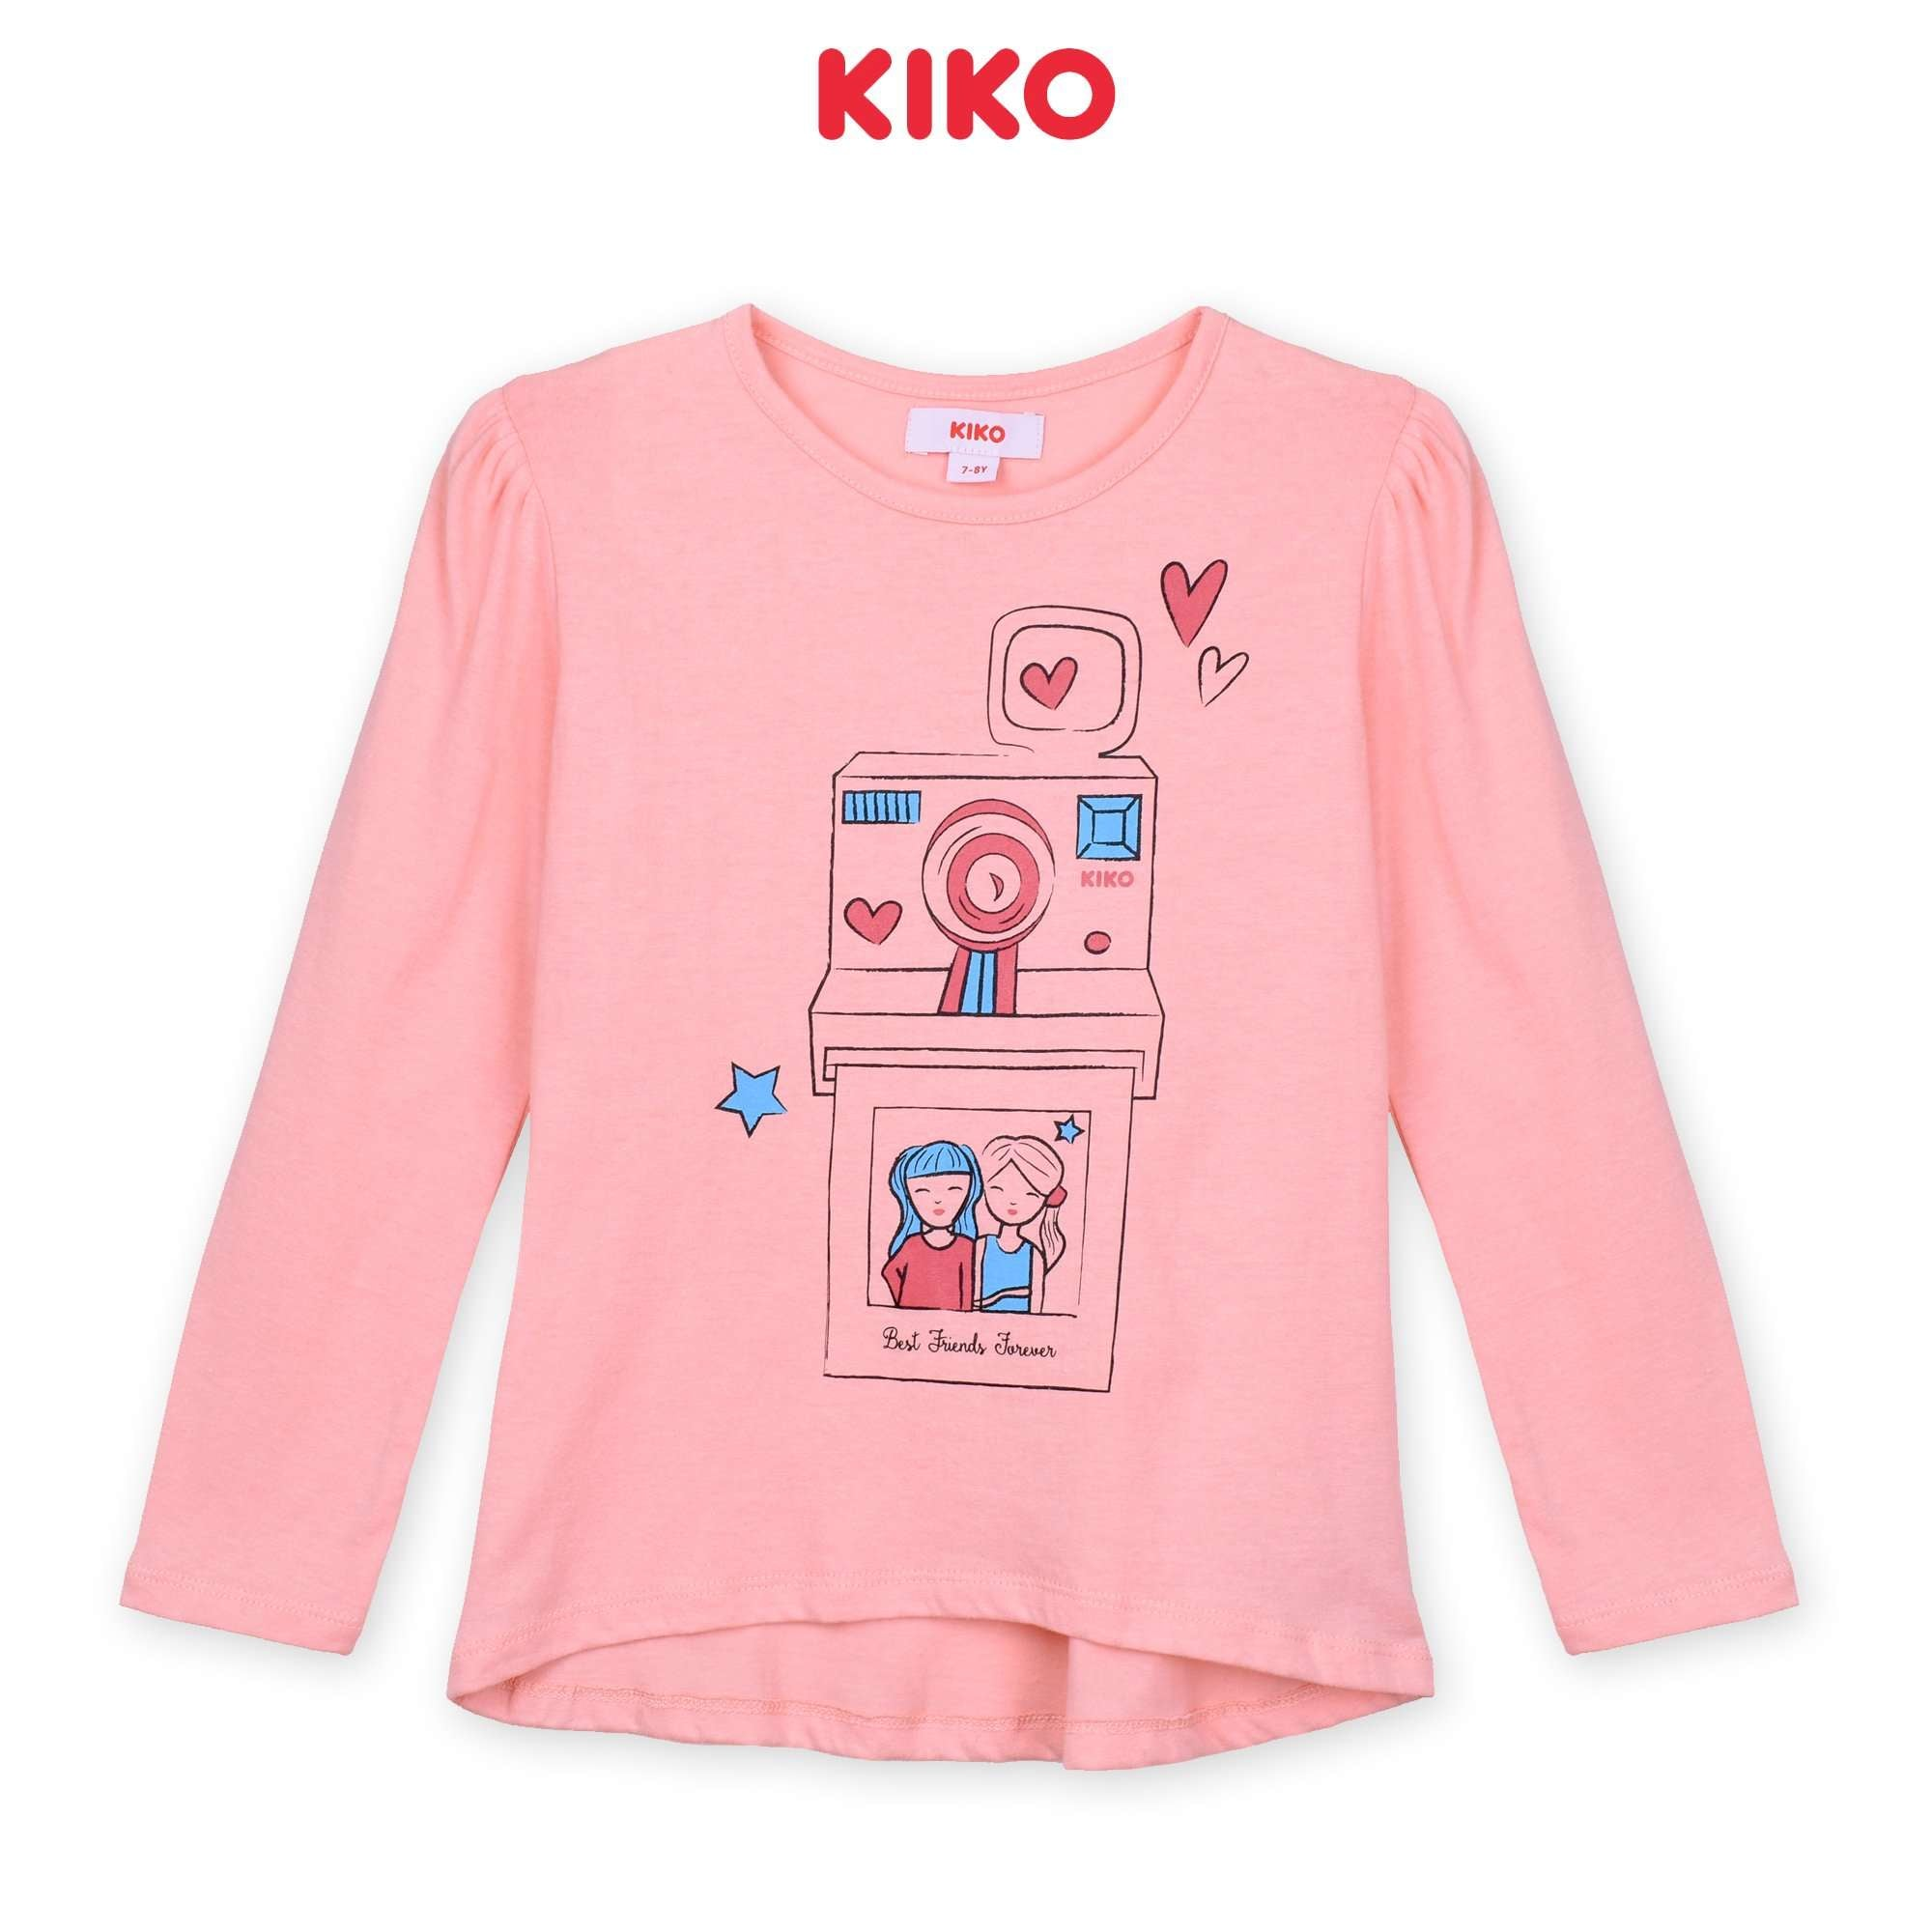 KIKO Girl Long Sleeve Tee - Pink K926103-1335-P5 : Buy KIKO online at CMG.MY